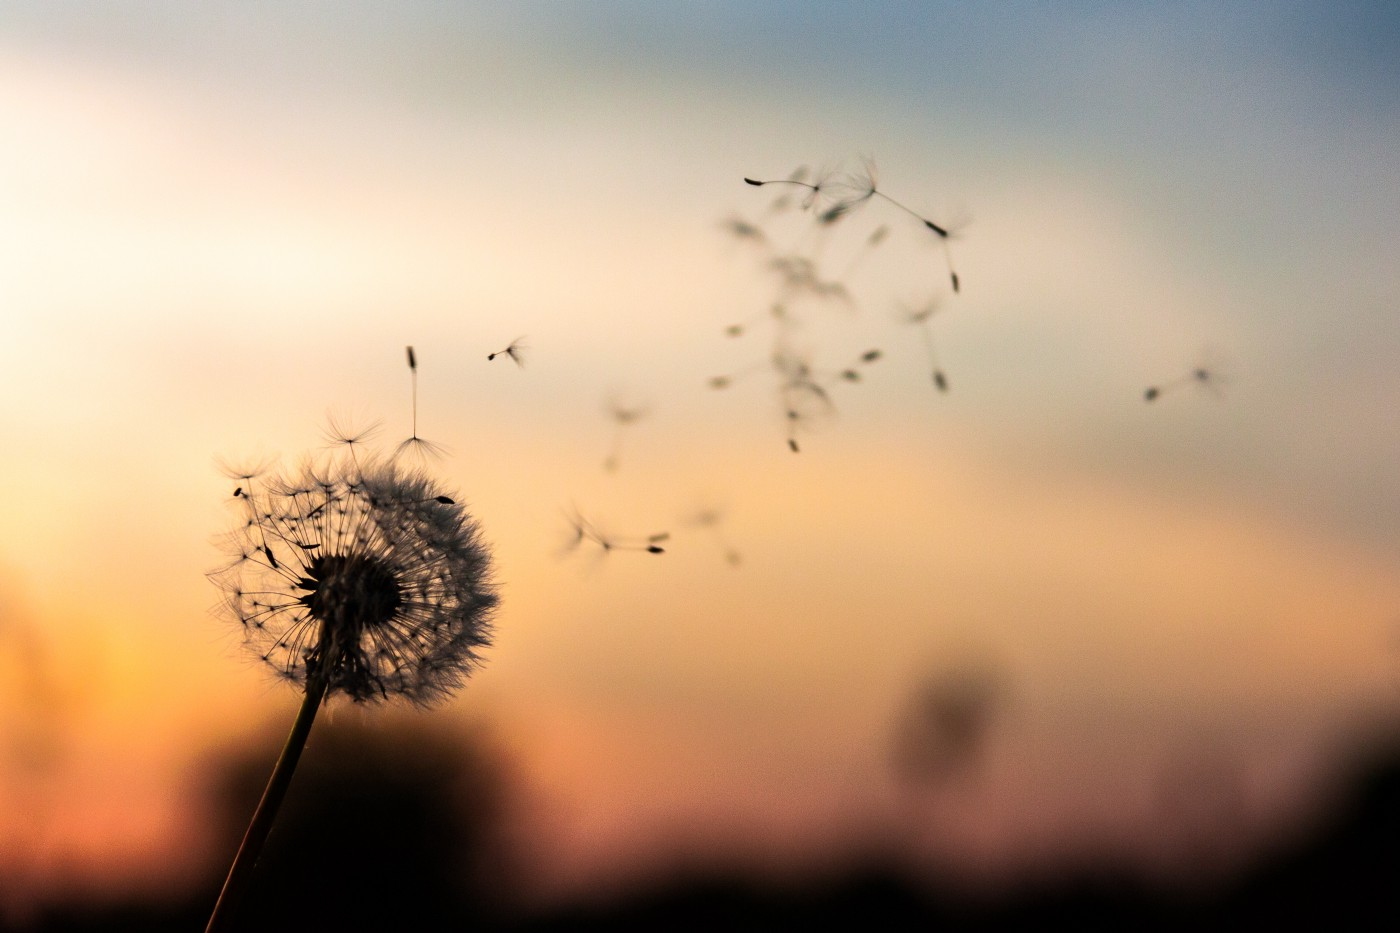 A dandelion blowing in the wind at sunset.